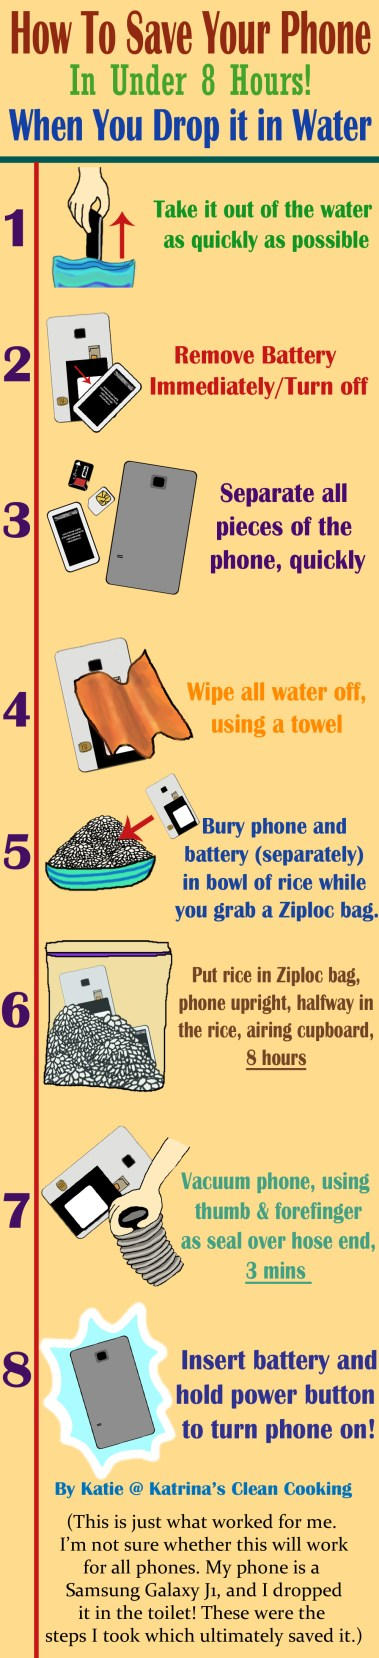 Save Phone Dropped phone in water #phone #toilet #waterdamage